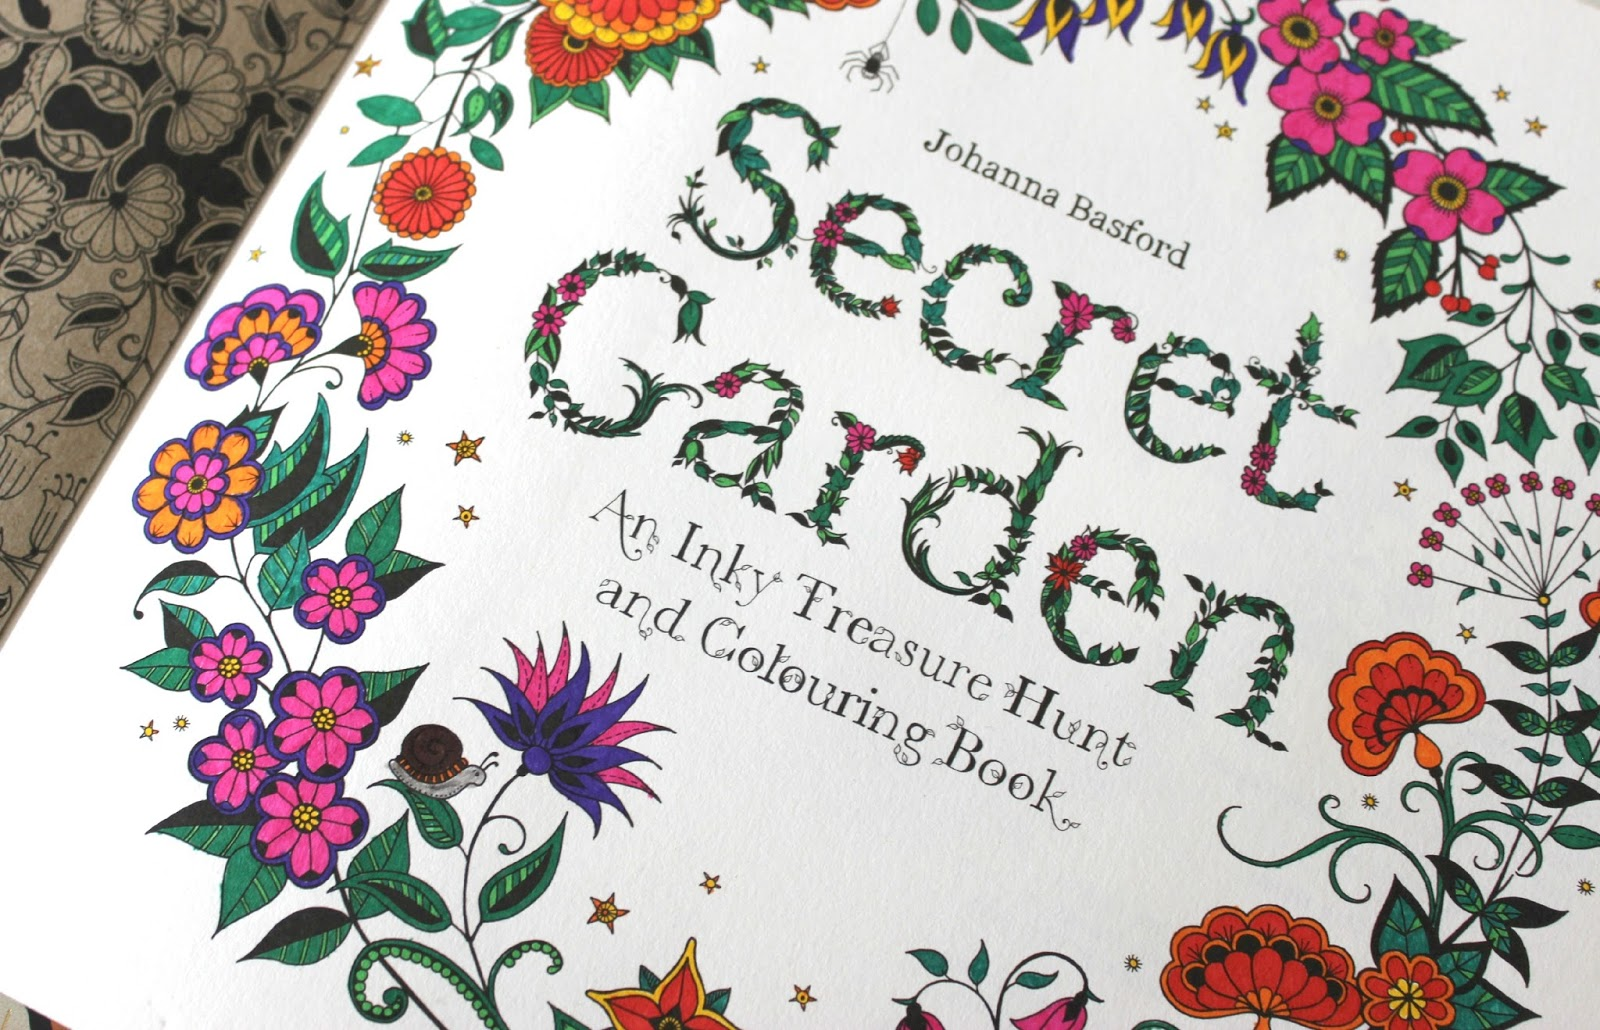 Secret Garden An Inky Treasure Hunt And Colouring Book Away Anxiety Tattooed Tealady Johanna Basford